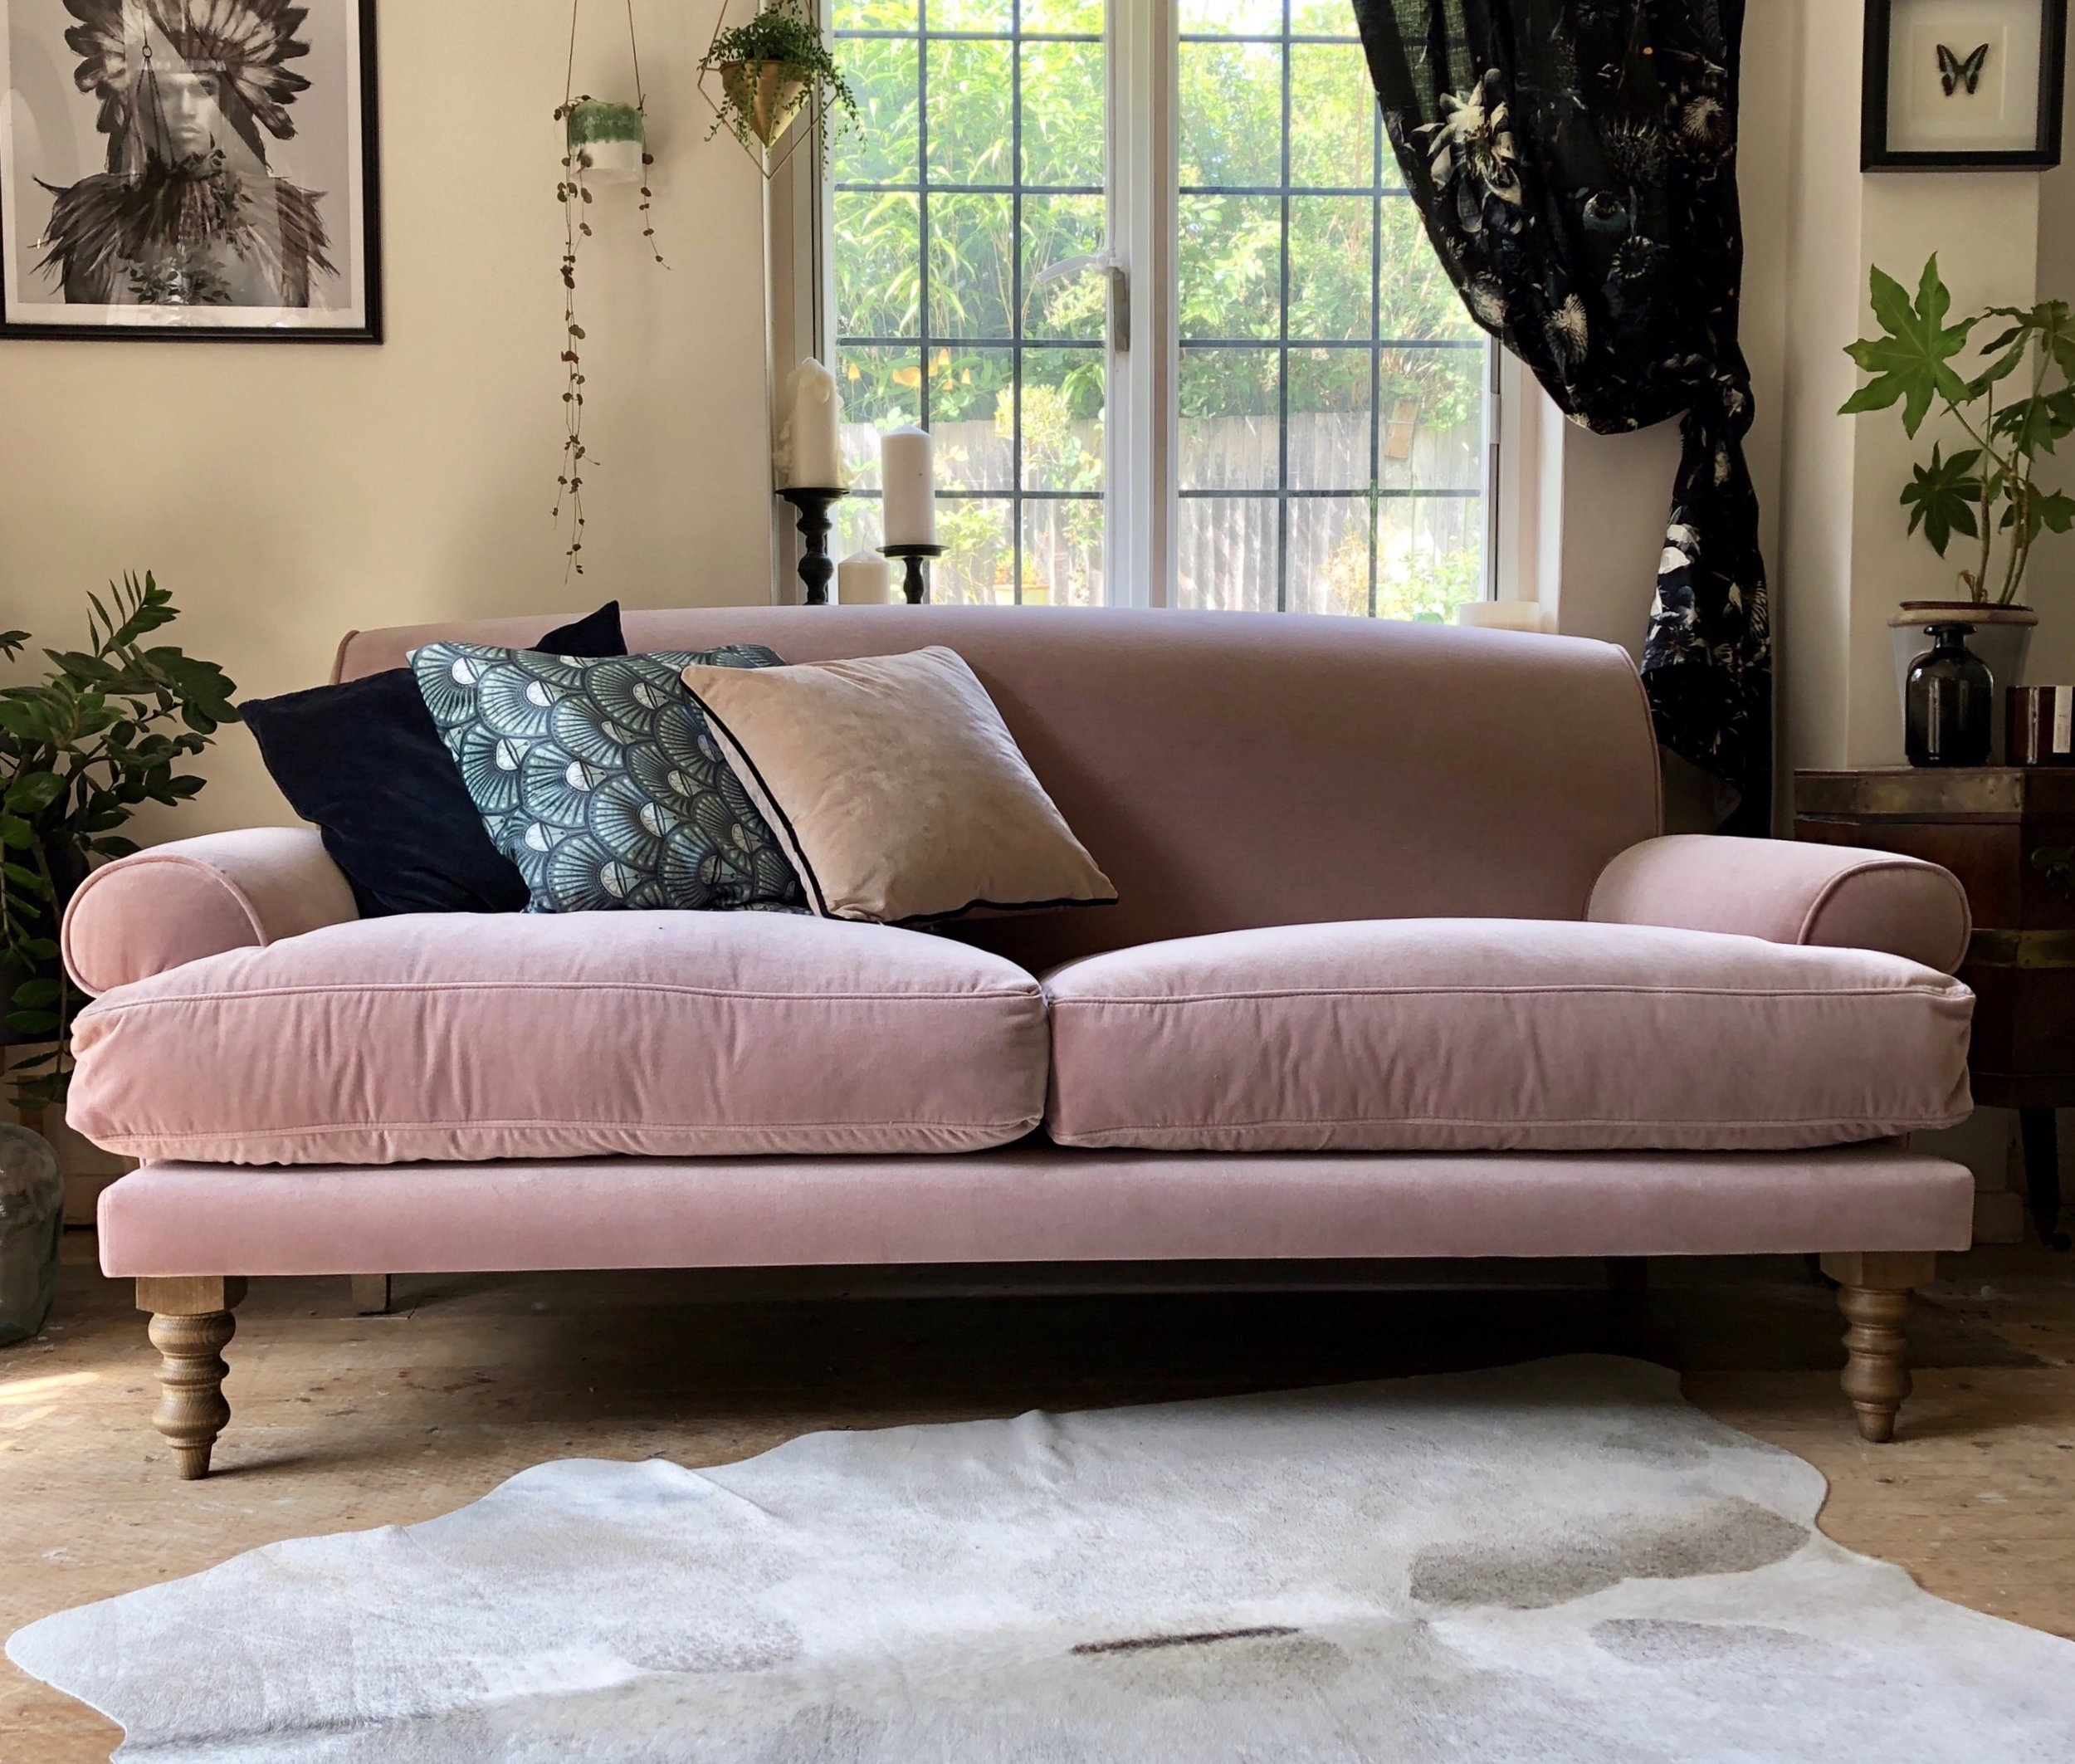 The blue, green and beige cushions look beautiful against the dusky pink…..